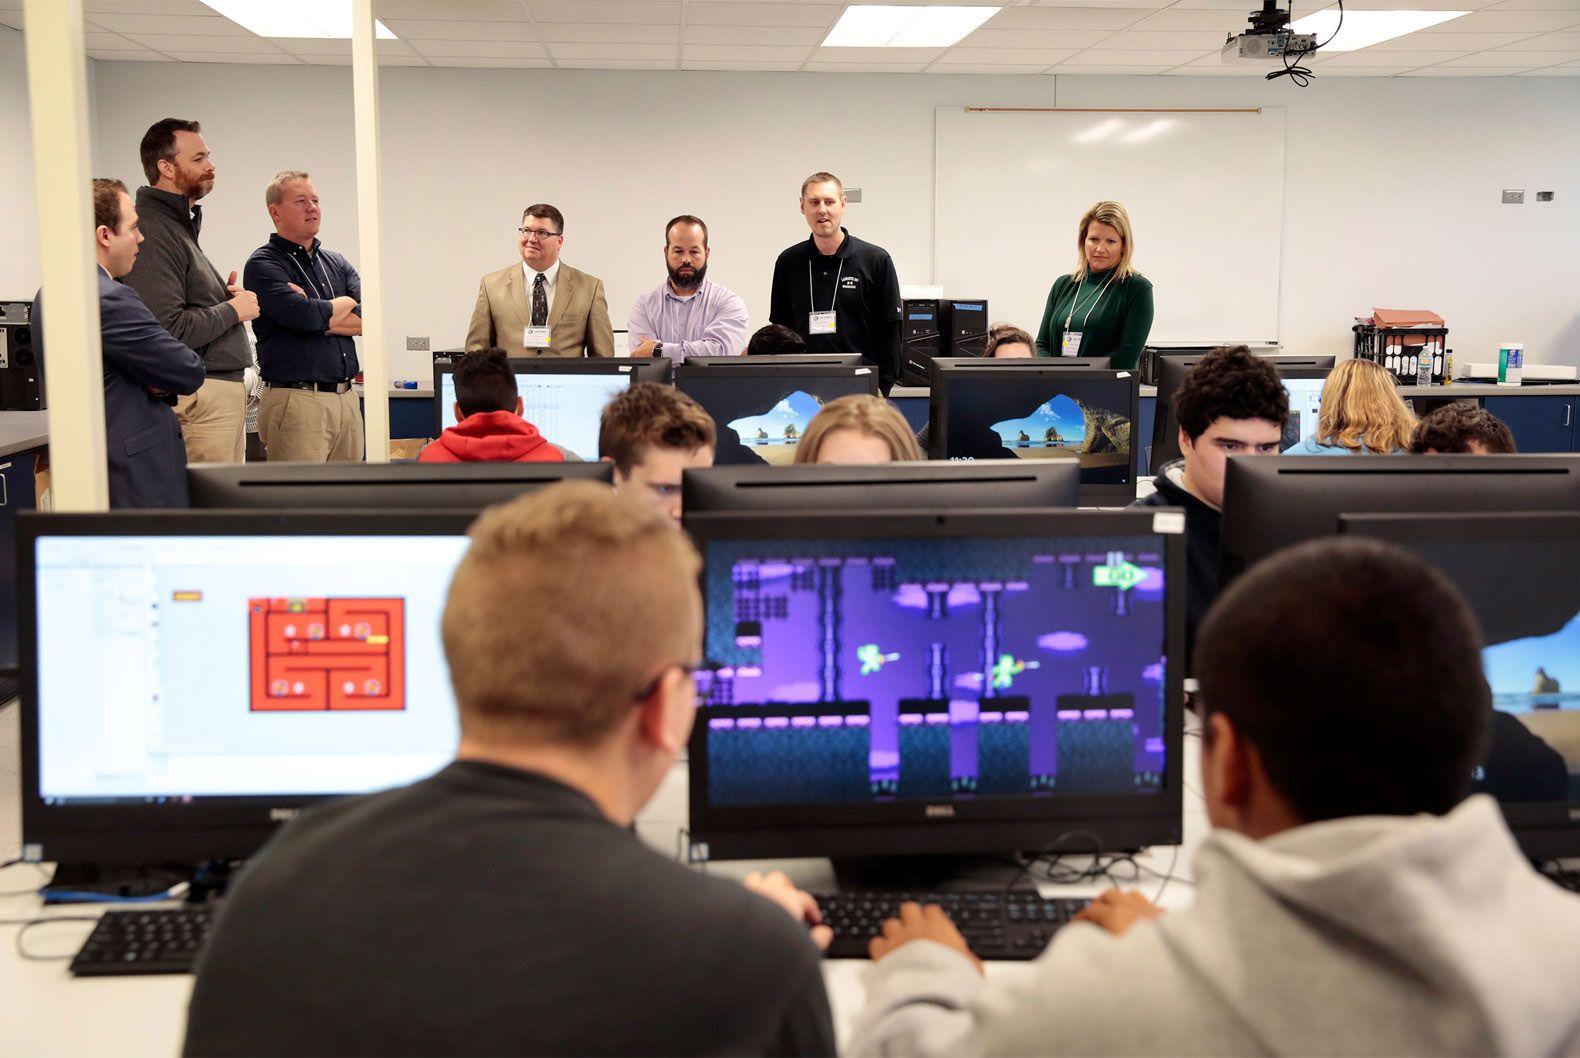 Visiting administrators and educators look in on a video game design class at West Leyden High School, part of the district's innovative efforts to integrate technology into its schools.